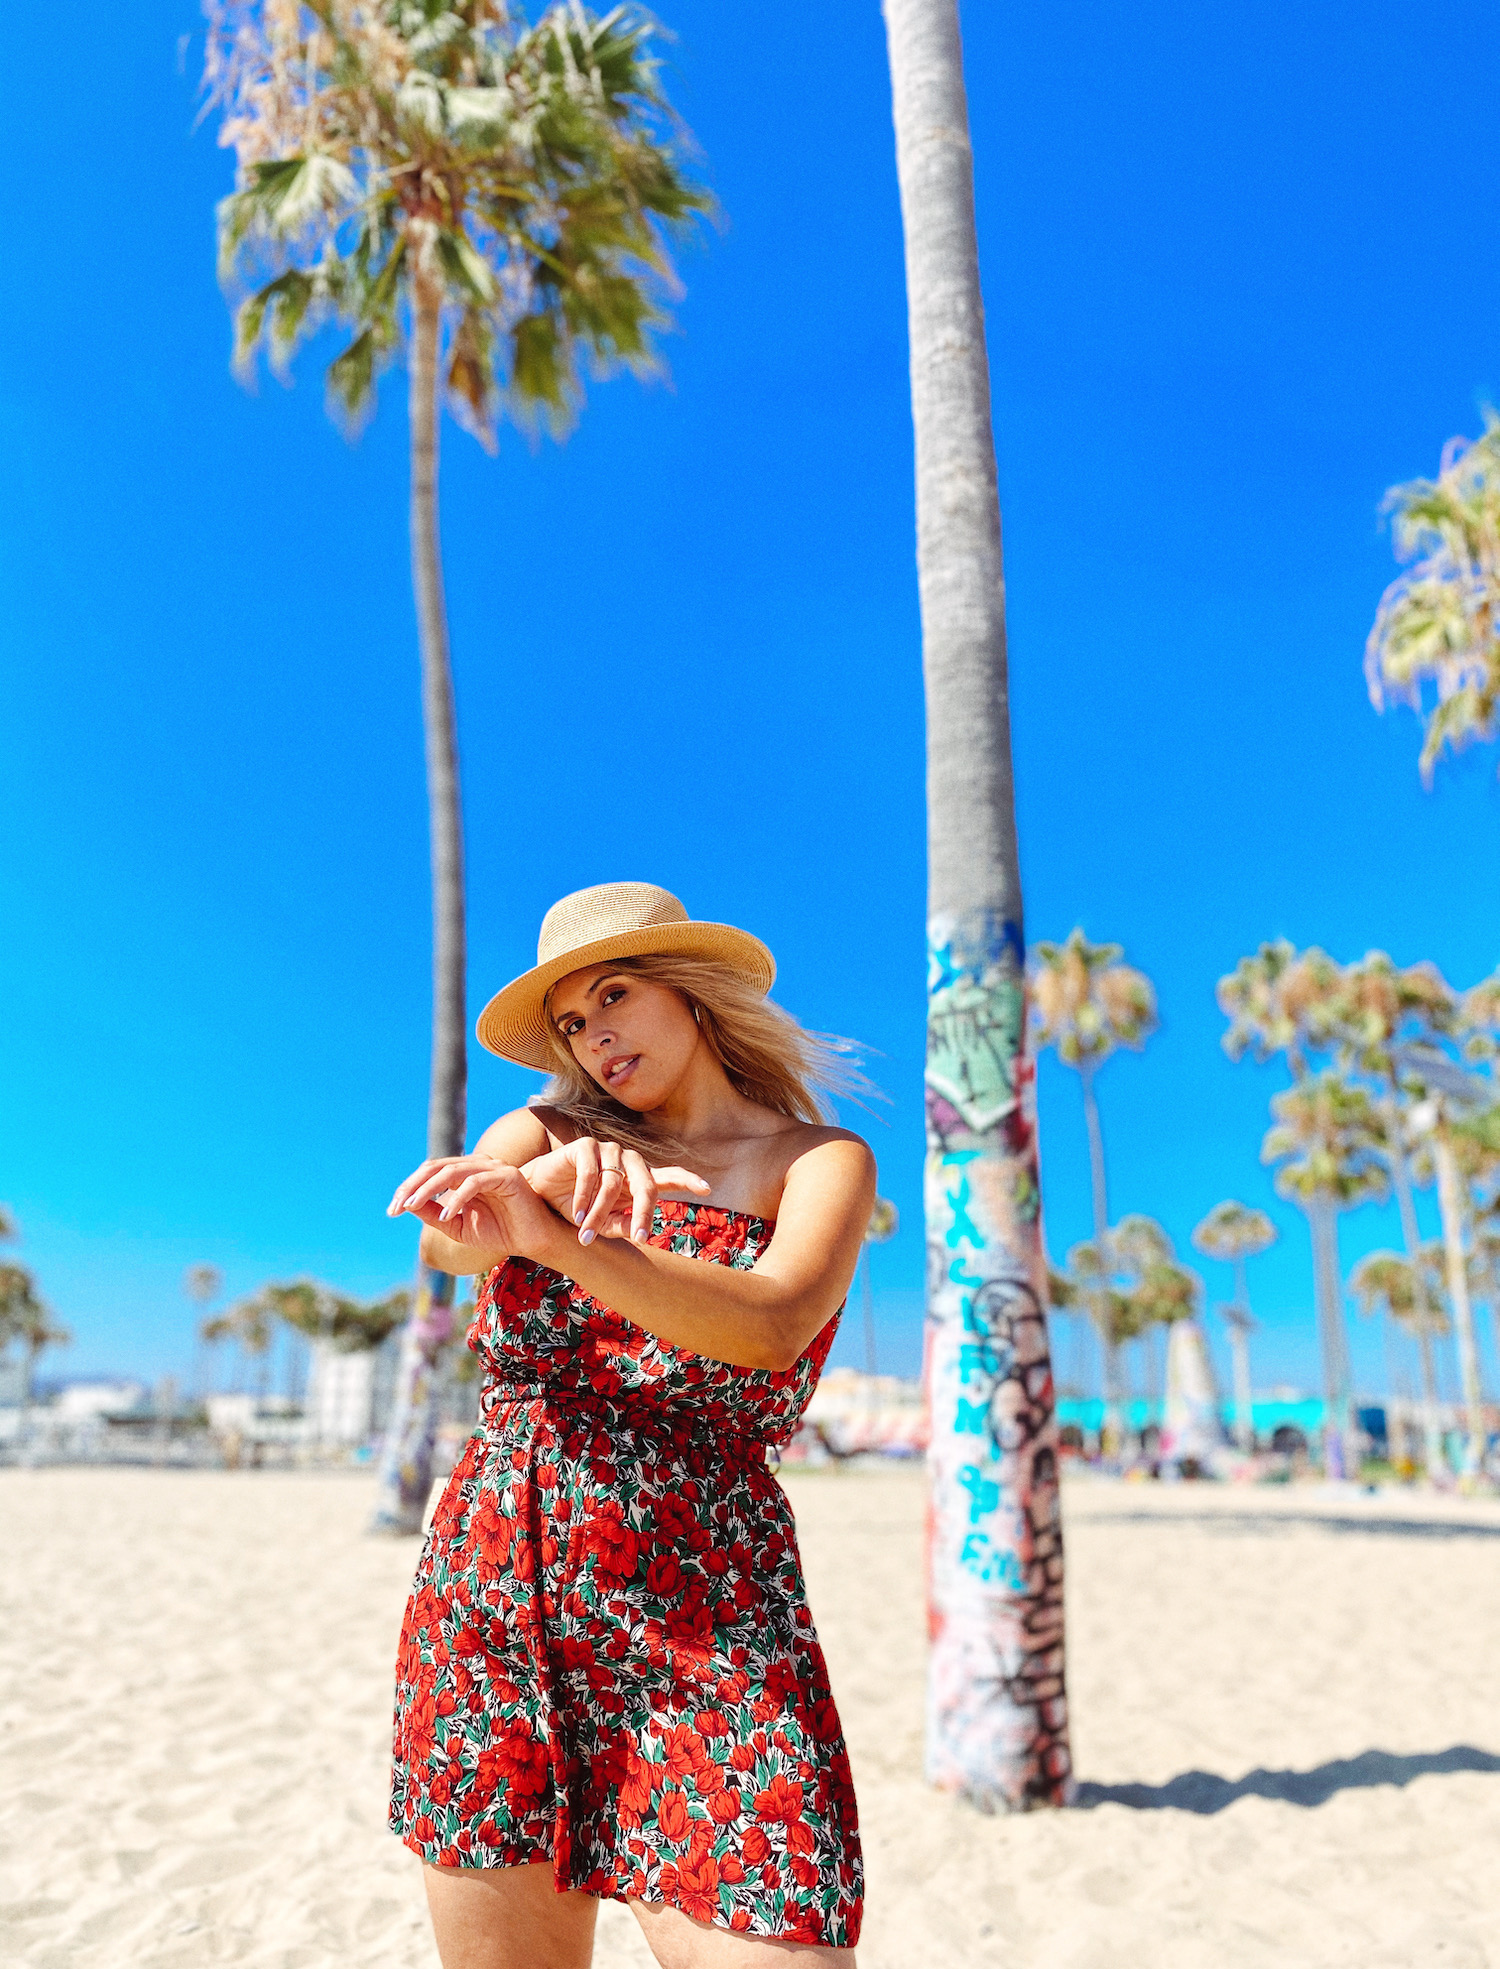 photoshoot on Venice Beach with palm trees